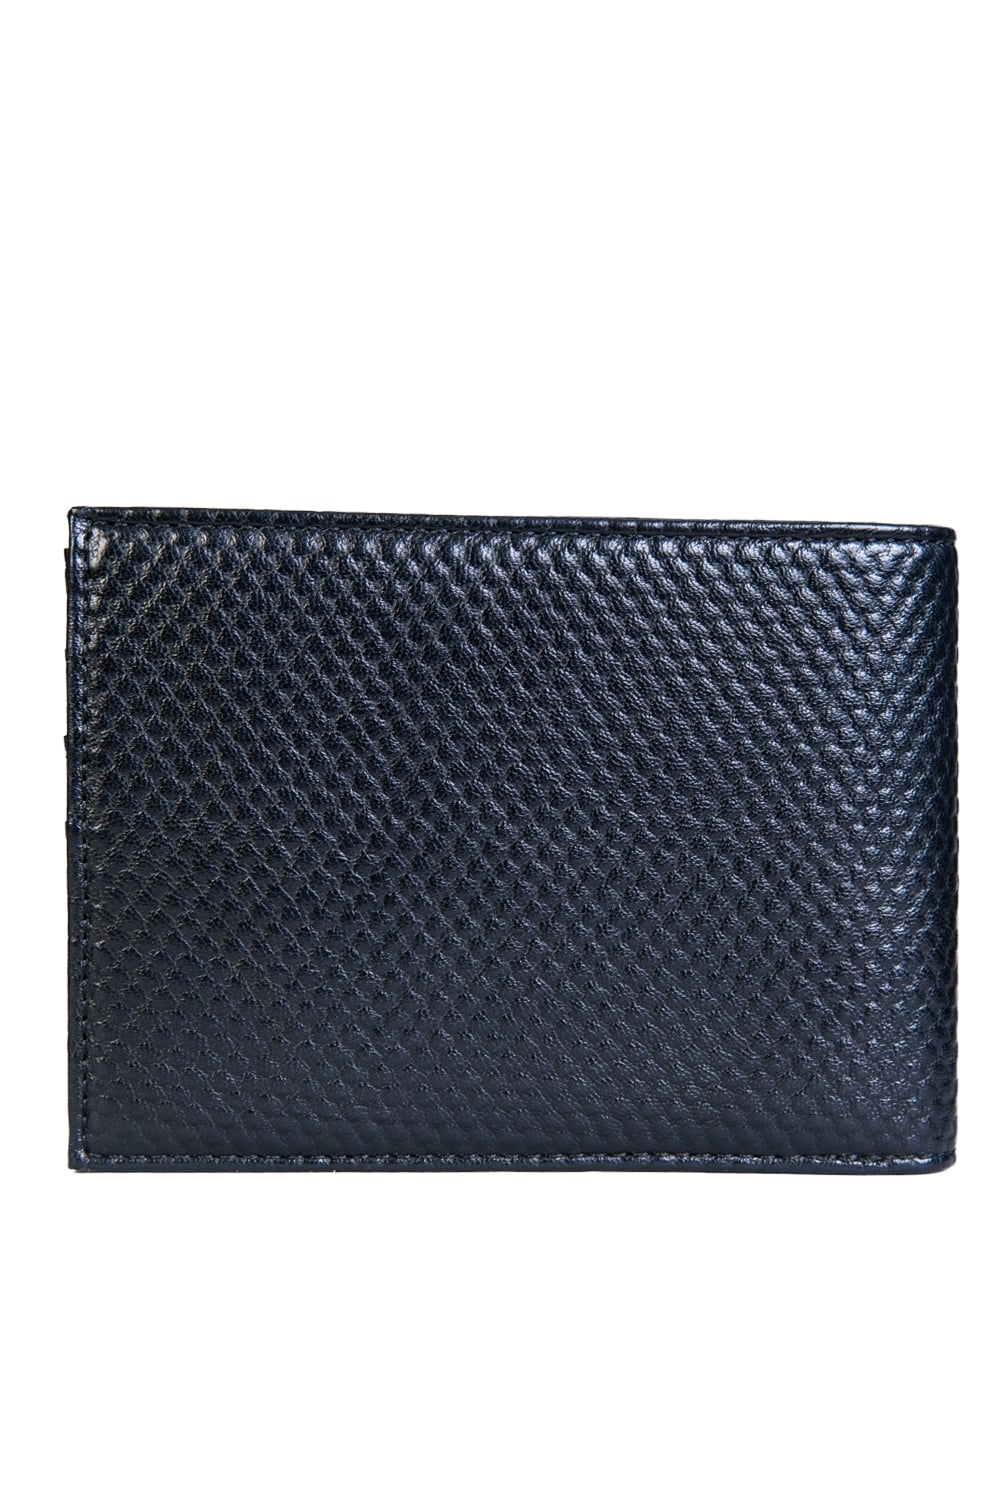 the best attitude e8f1d 34fc8 Armani Jeans Wallet Bifold 10 Card Holder Slots 938012 7A941